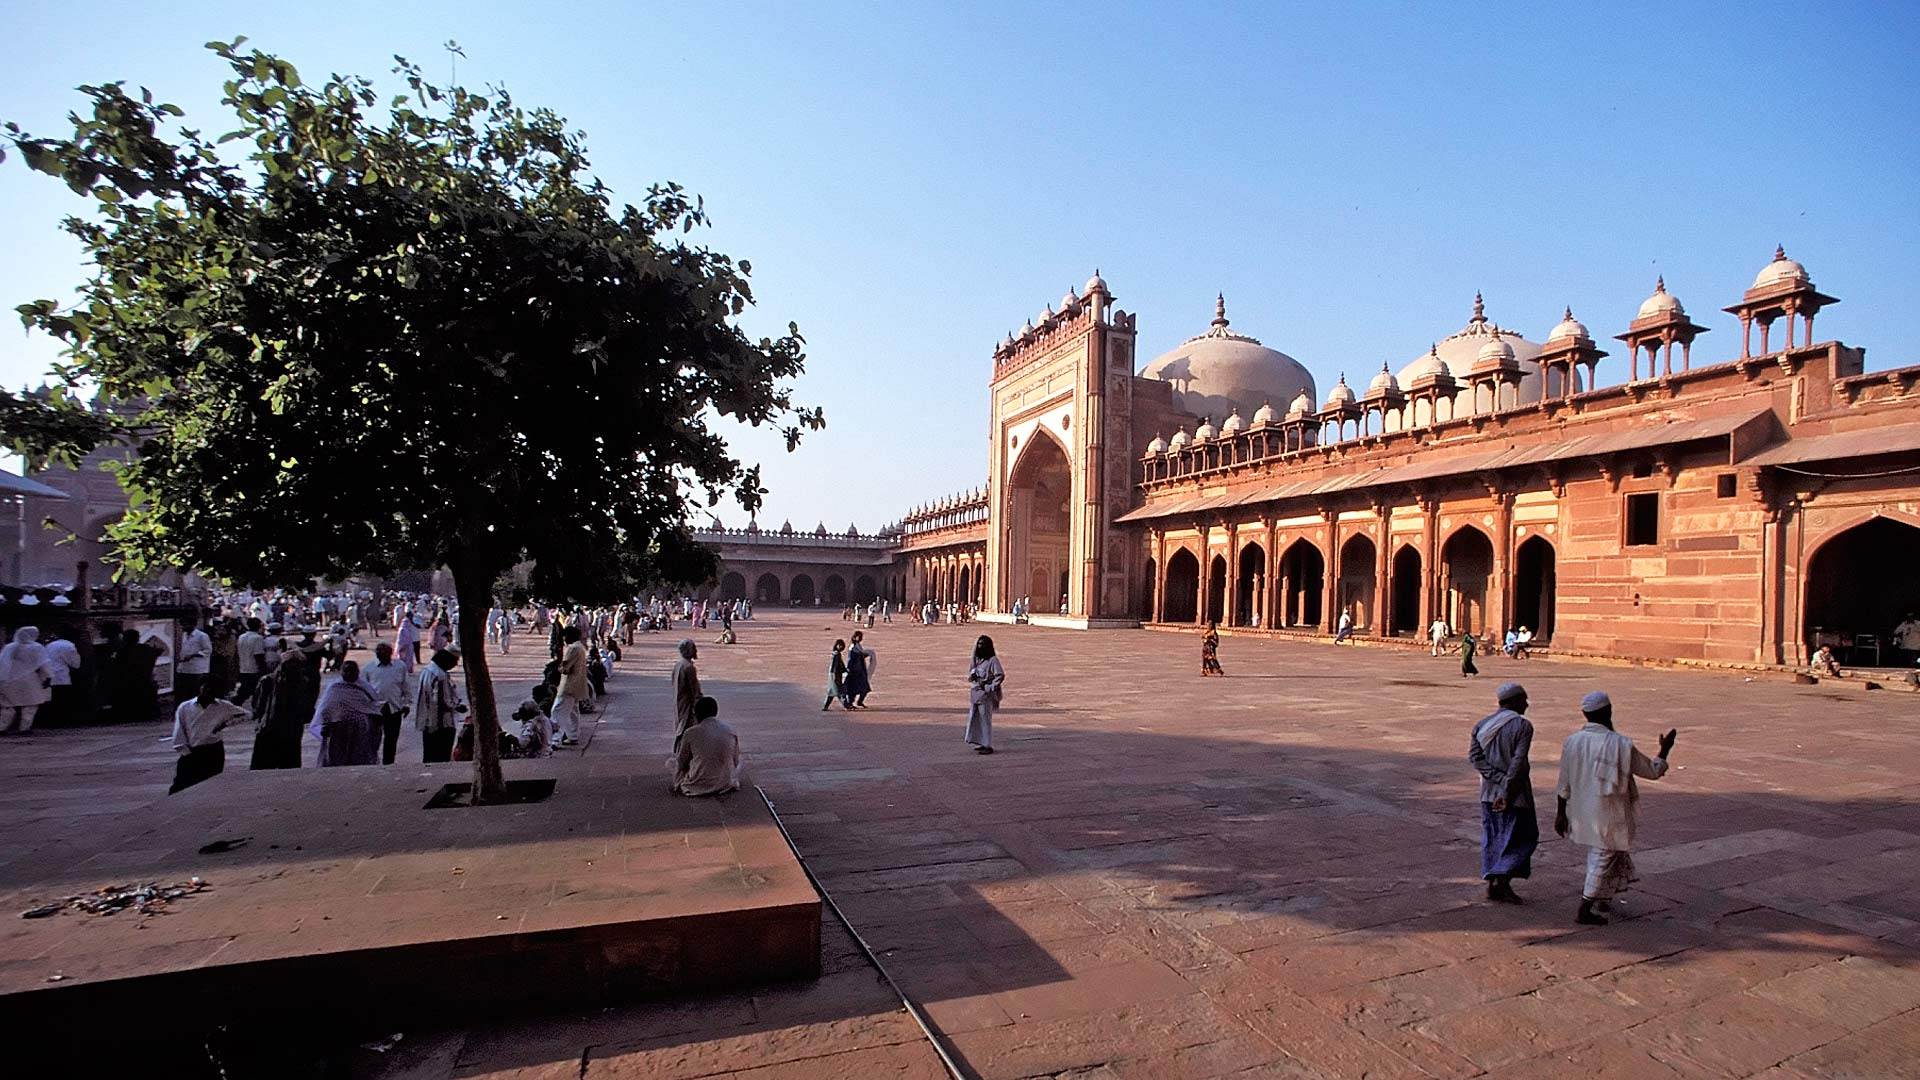 Friday Mosque at the Dargah Mosque, Fatehpur Sikri, Uttar Pradesh, India